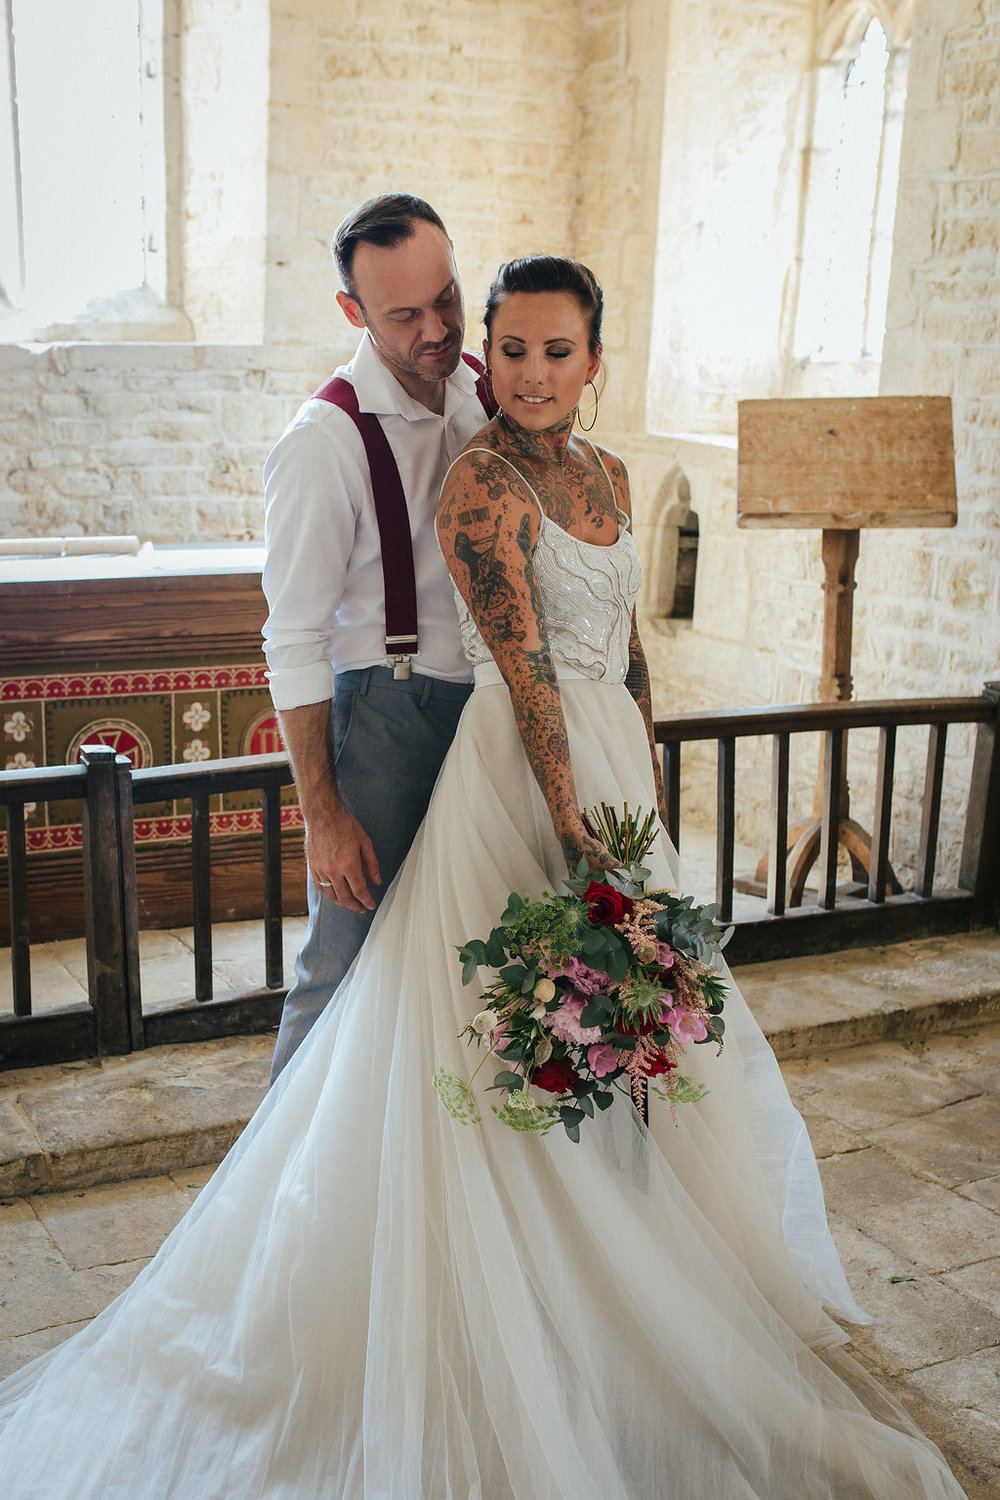 Rock and roll bride and groom in church